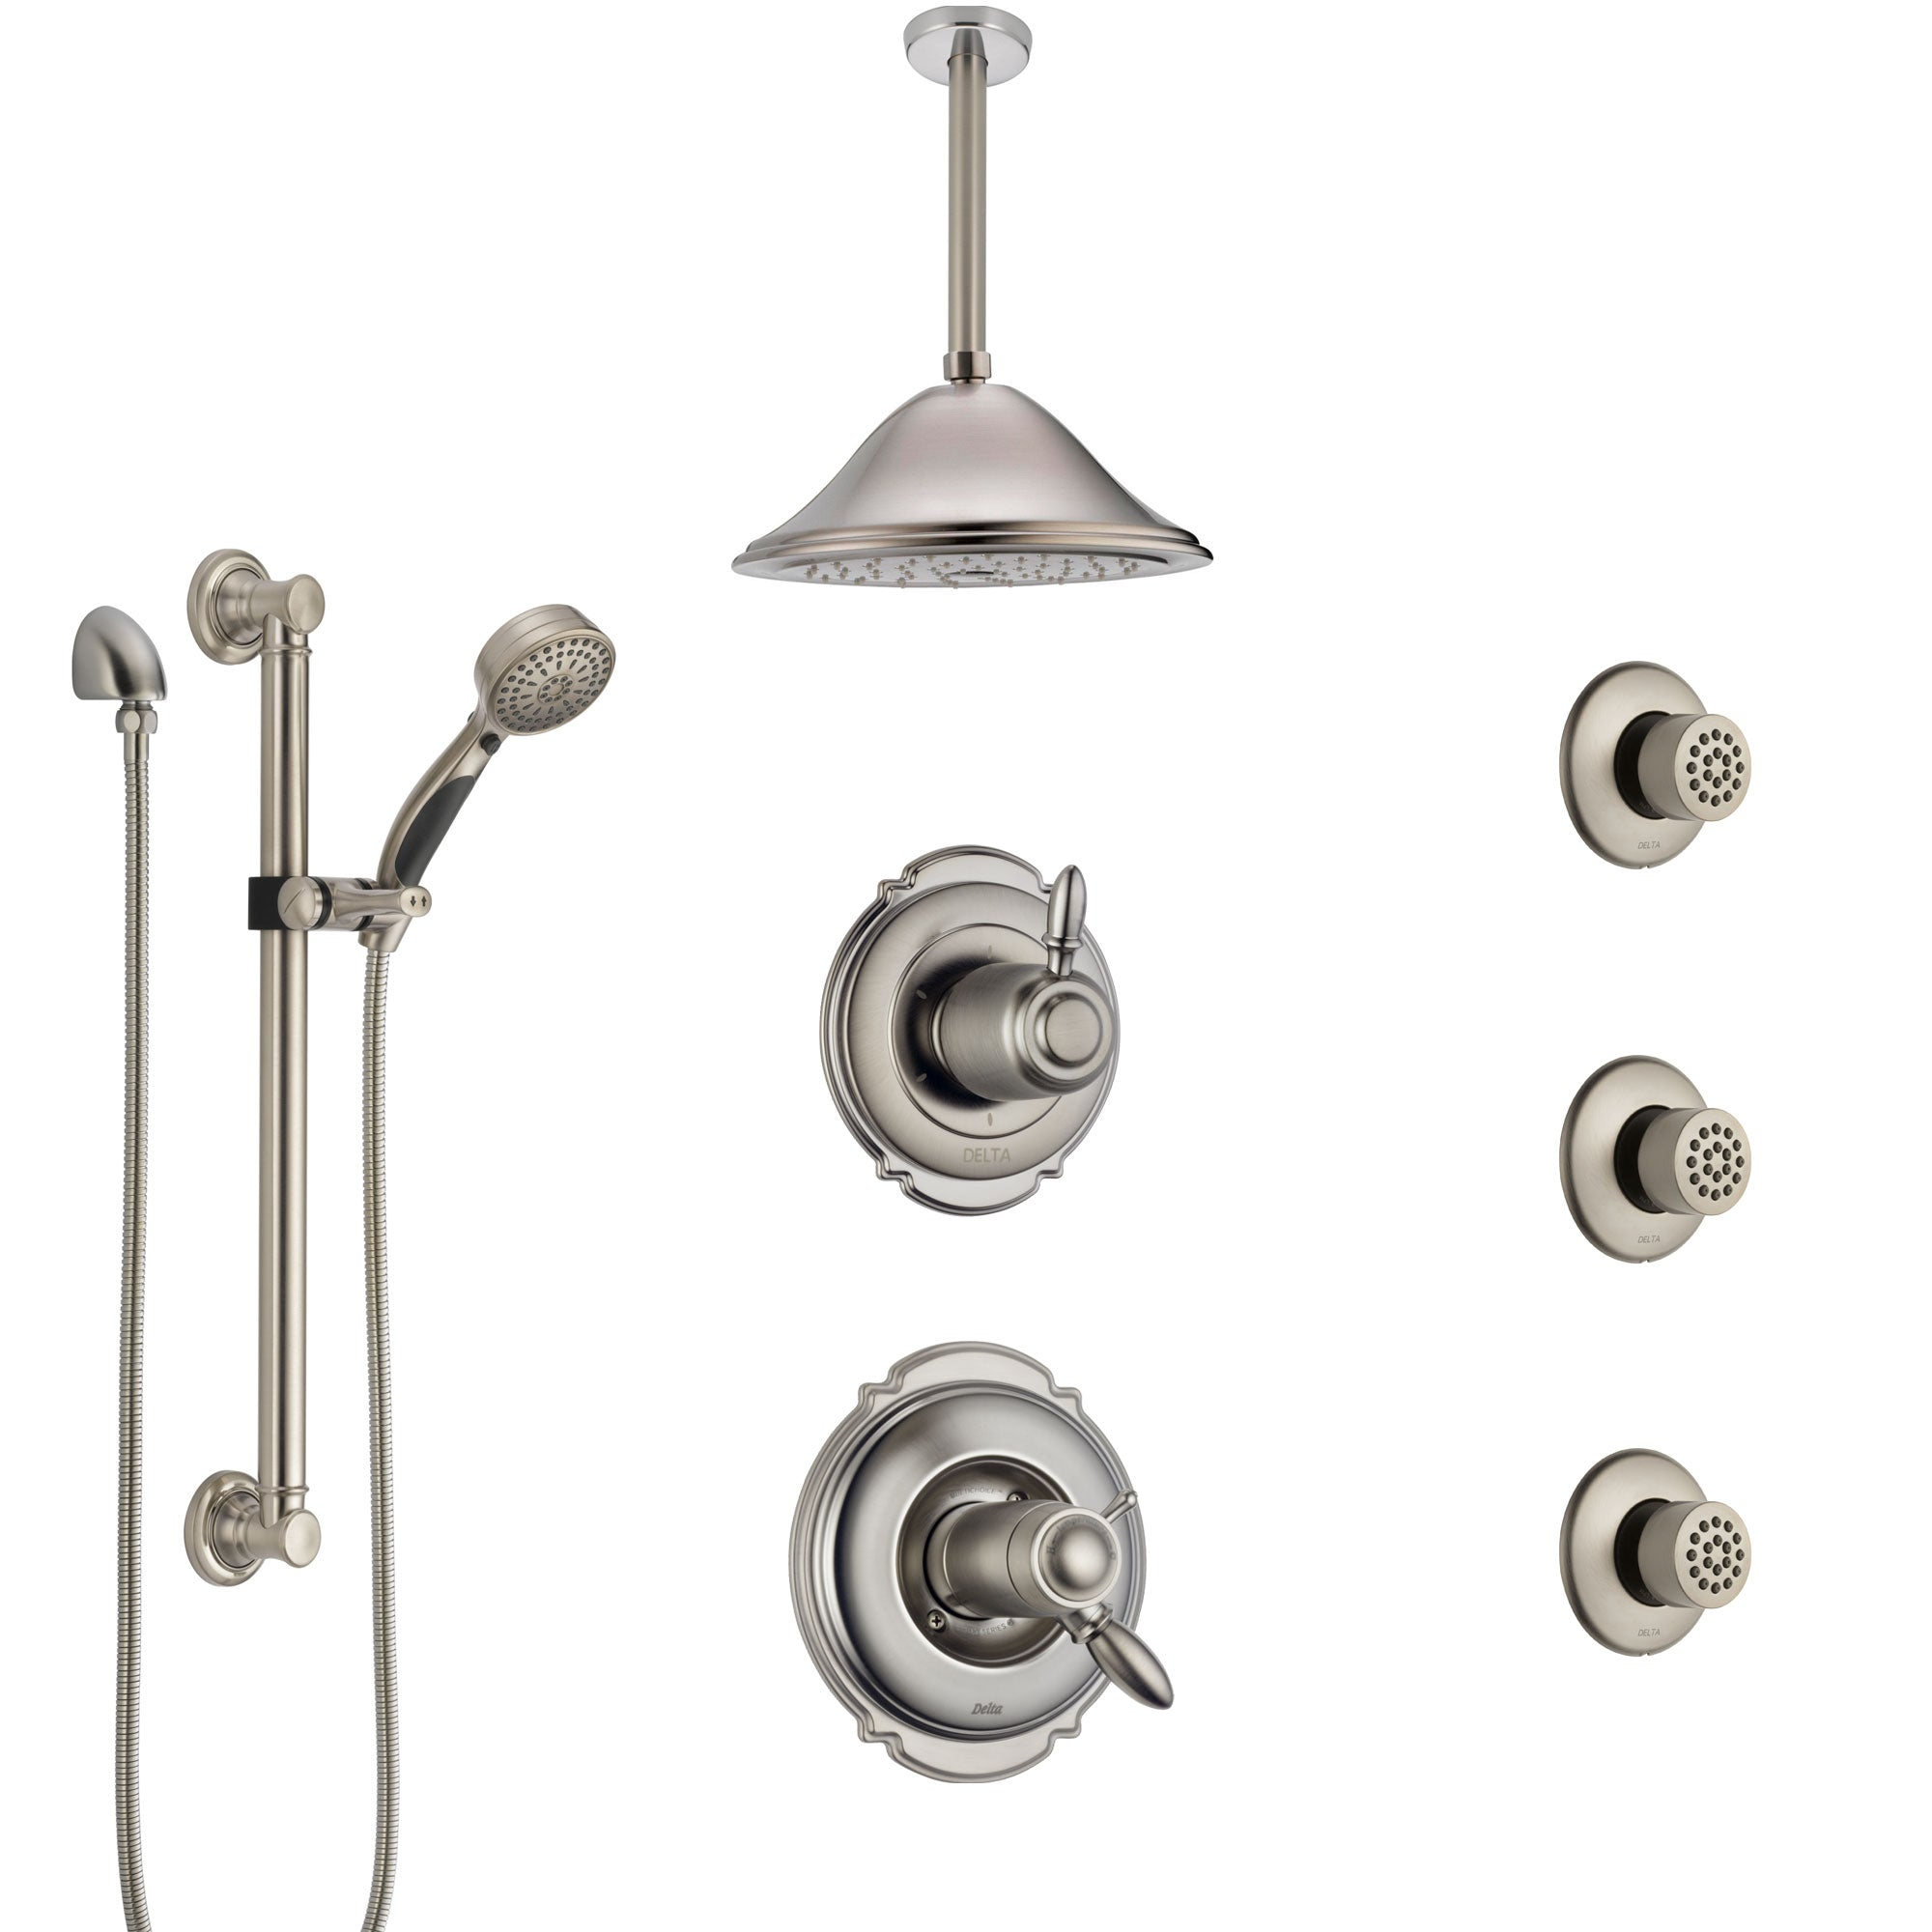 Delta Victorian Dual Thermostatic Control Stainless Steel Finish Shower System with Ceiling Showerhead, 3 Body Jets, Grab Bar Hand Spray SS17T552SS7